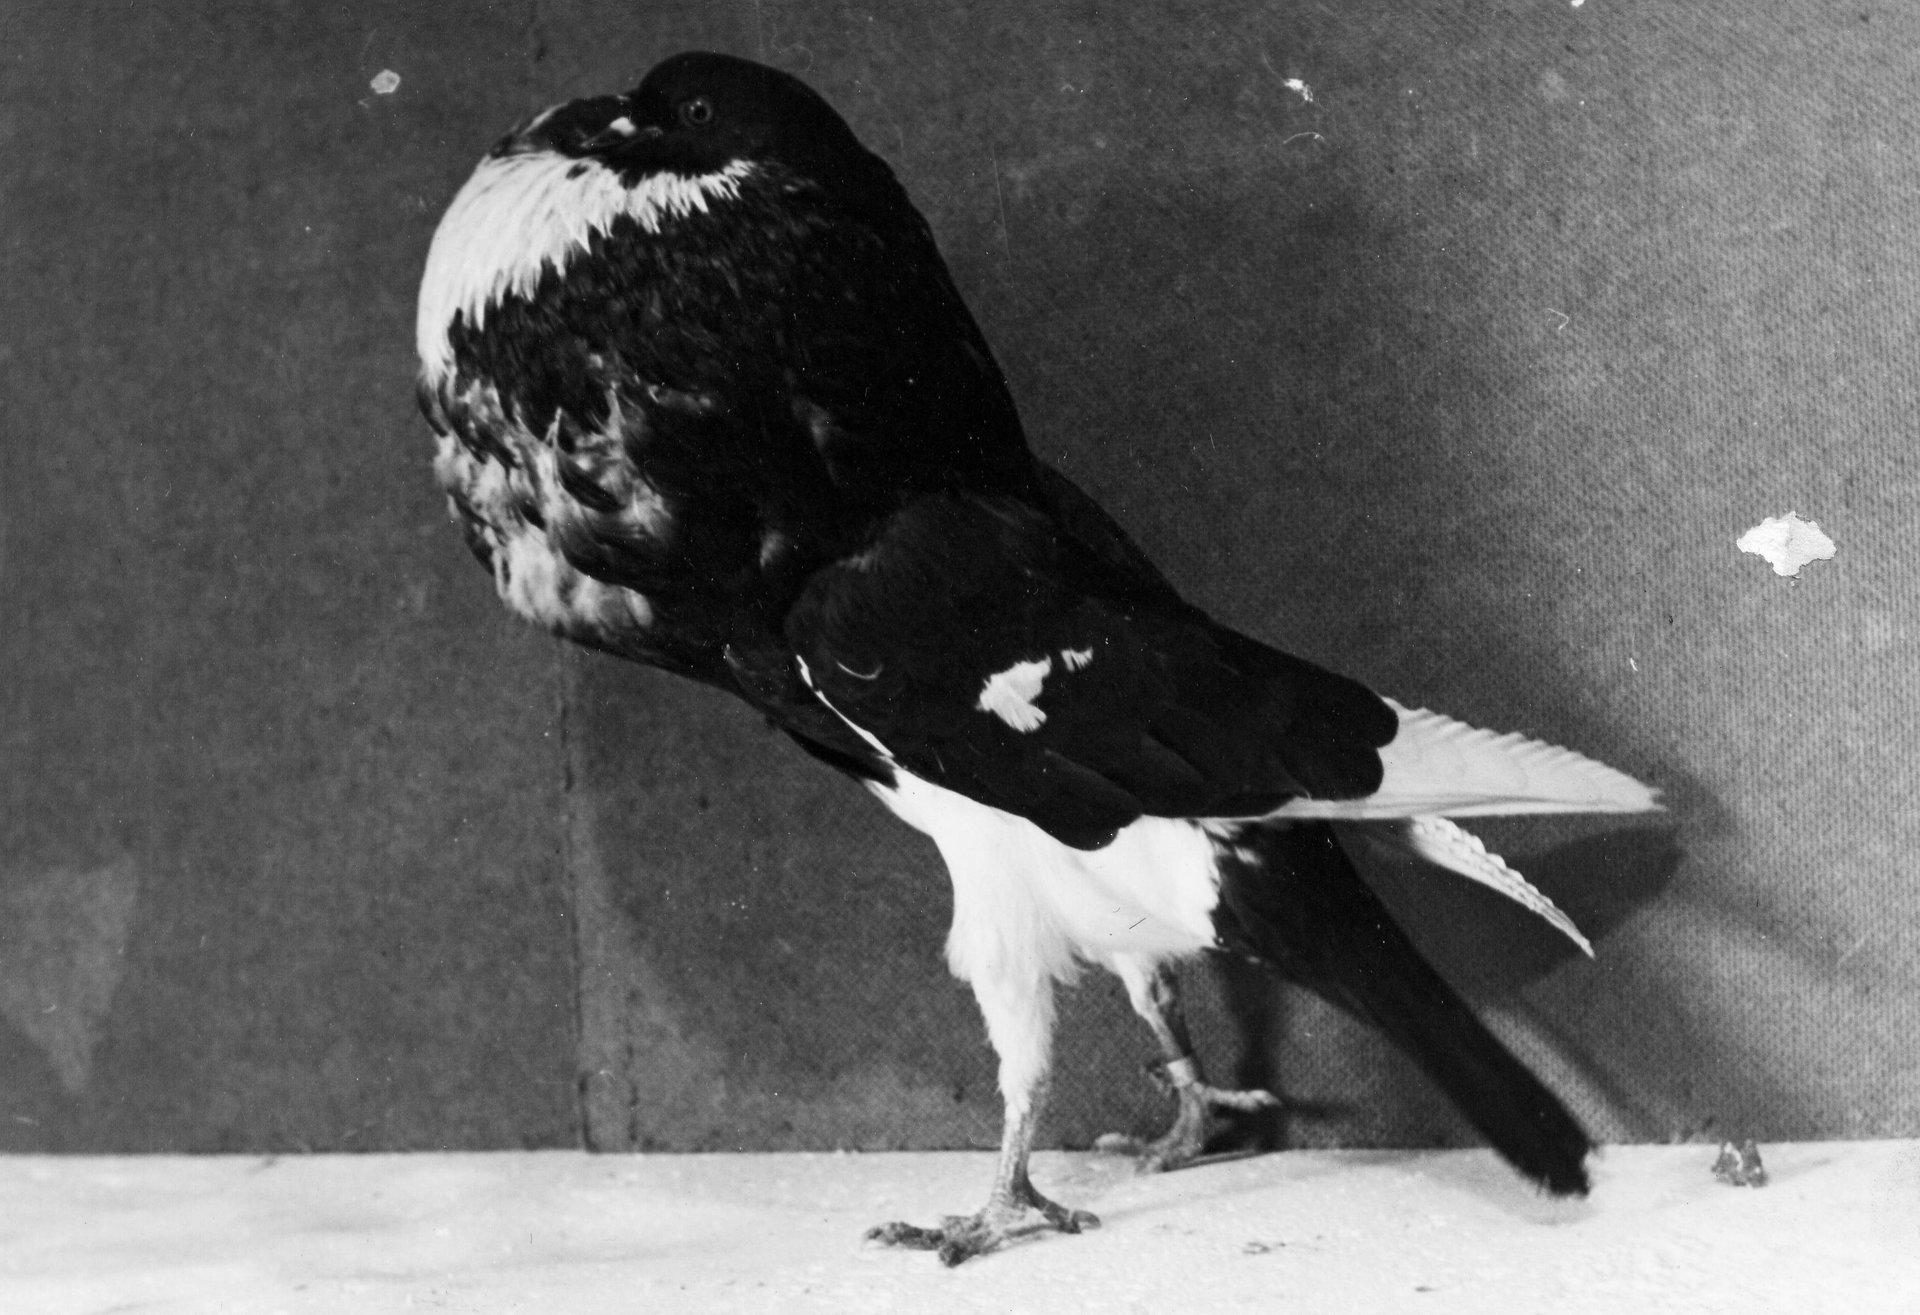 Petra Feriancová, Series Creator – From the Archive of O. Ferianc, New Breeds 1949-1952, 2008, (70/112)